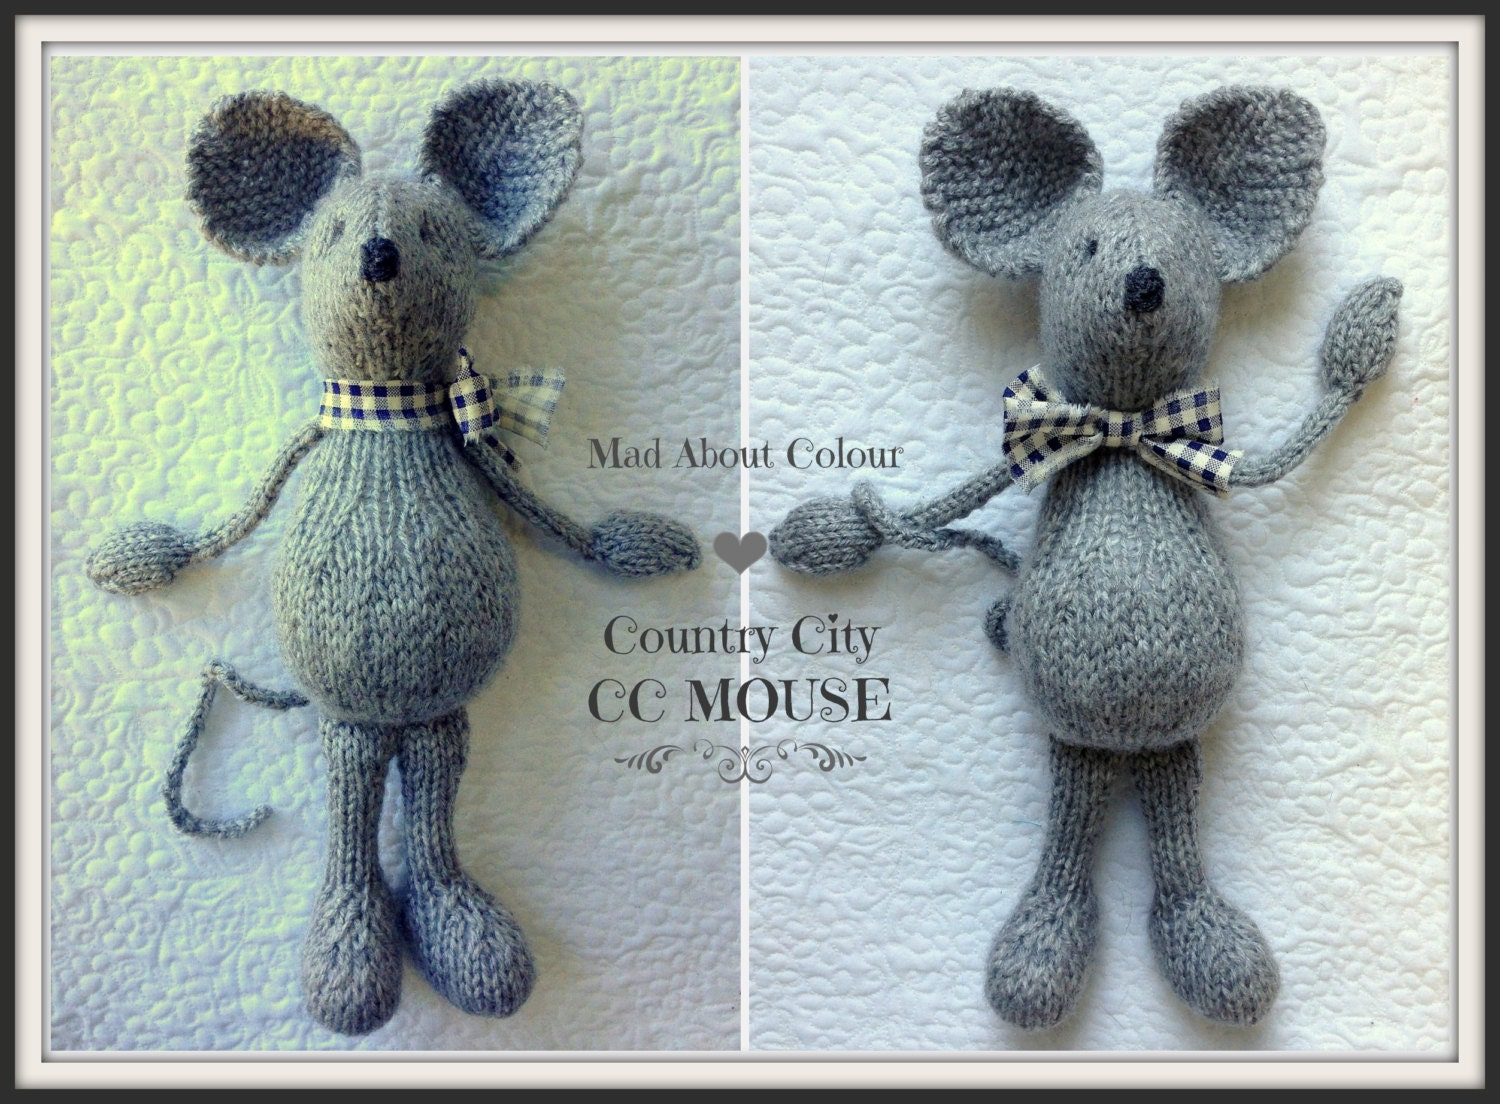 MoUSE KNiTTING PaTTERN Soft Toy PDF PaTTeRN ONLY Heirloom Child ...